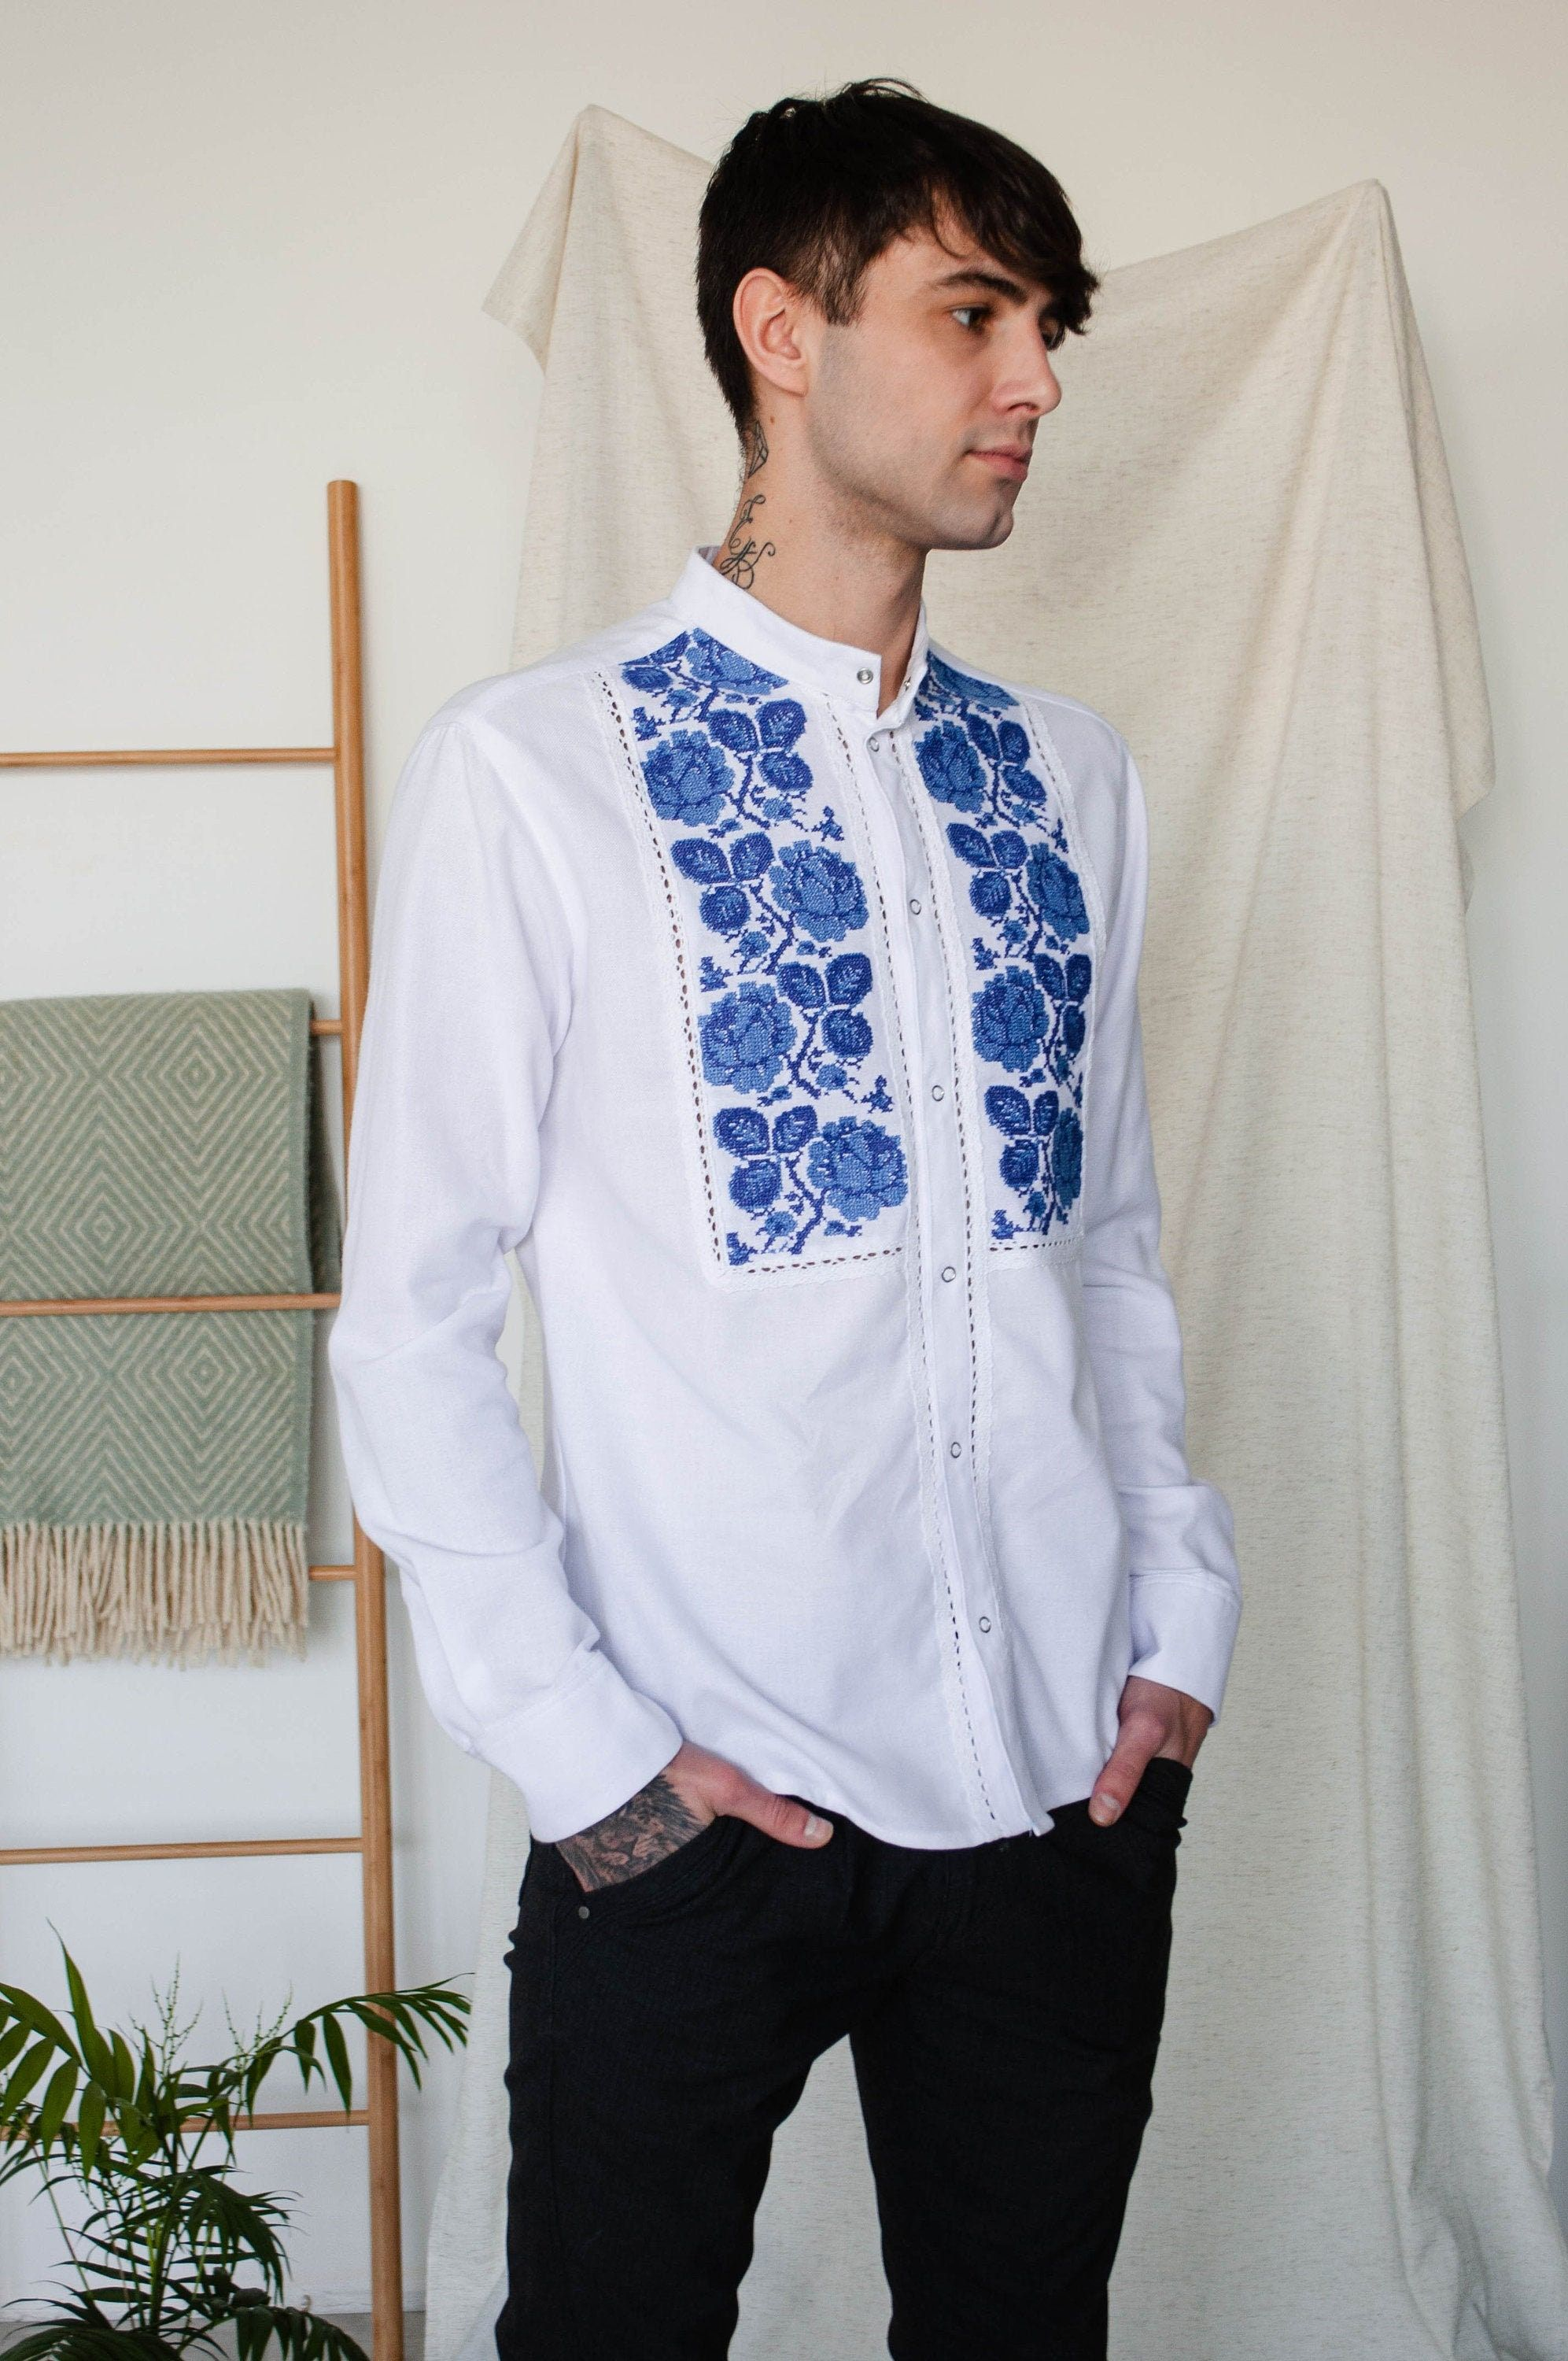 Floral embroidered folk shirt for men DESCRIPTION: ▪️ white cotton shirt with front snap buttons closure ▪️ decorated with cross stitch floral embroidery ▪️ white cotton lace inserts ▪️ band-collar ▪️ long sleeves finished with snap button Every item is handmade to order and to your body measurements (custom size). Also, you can choose between our standard size chart (check last picture) ♥Custom size♥ Everyone has a unique body. So in order to make the garment fit perfectly, once you have placed